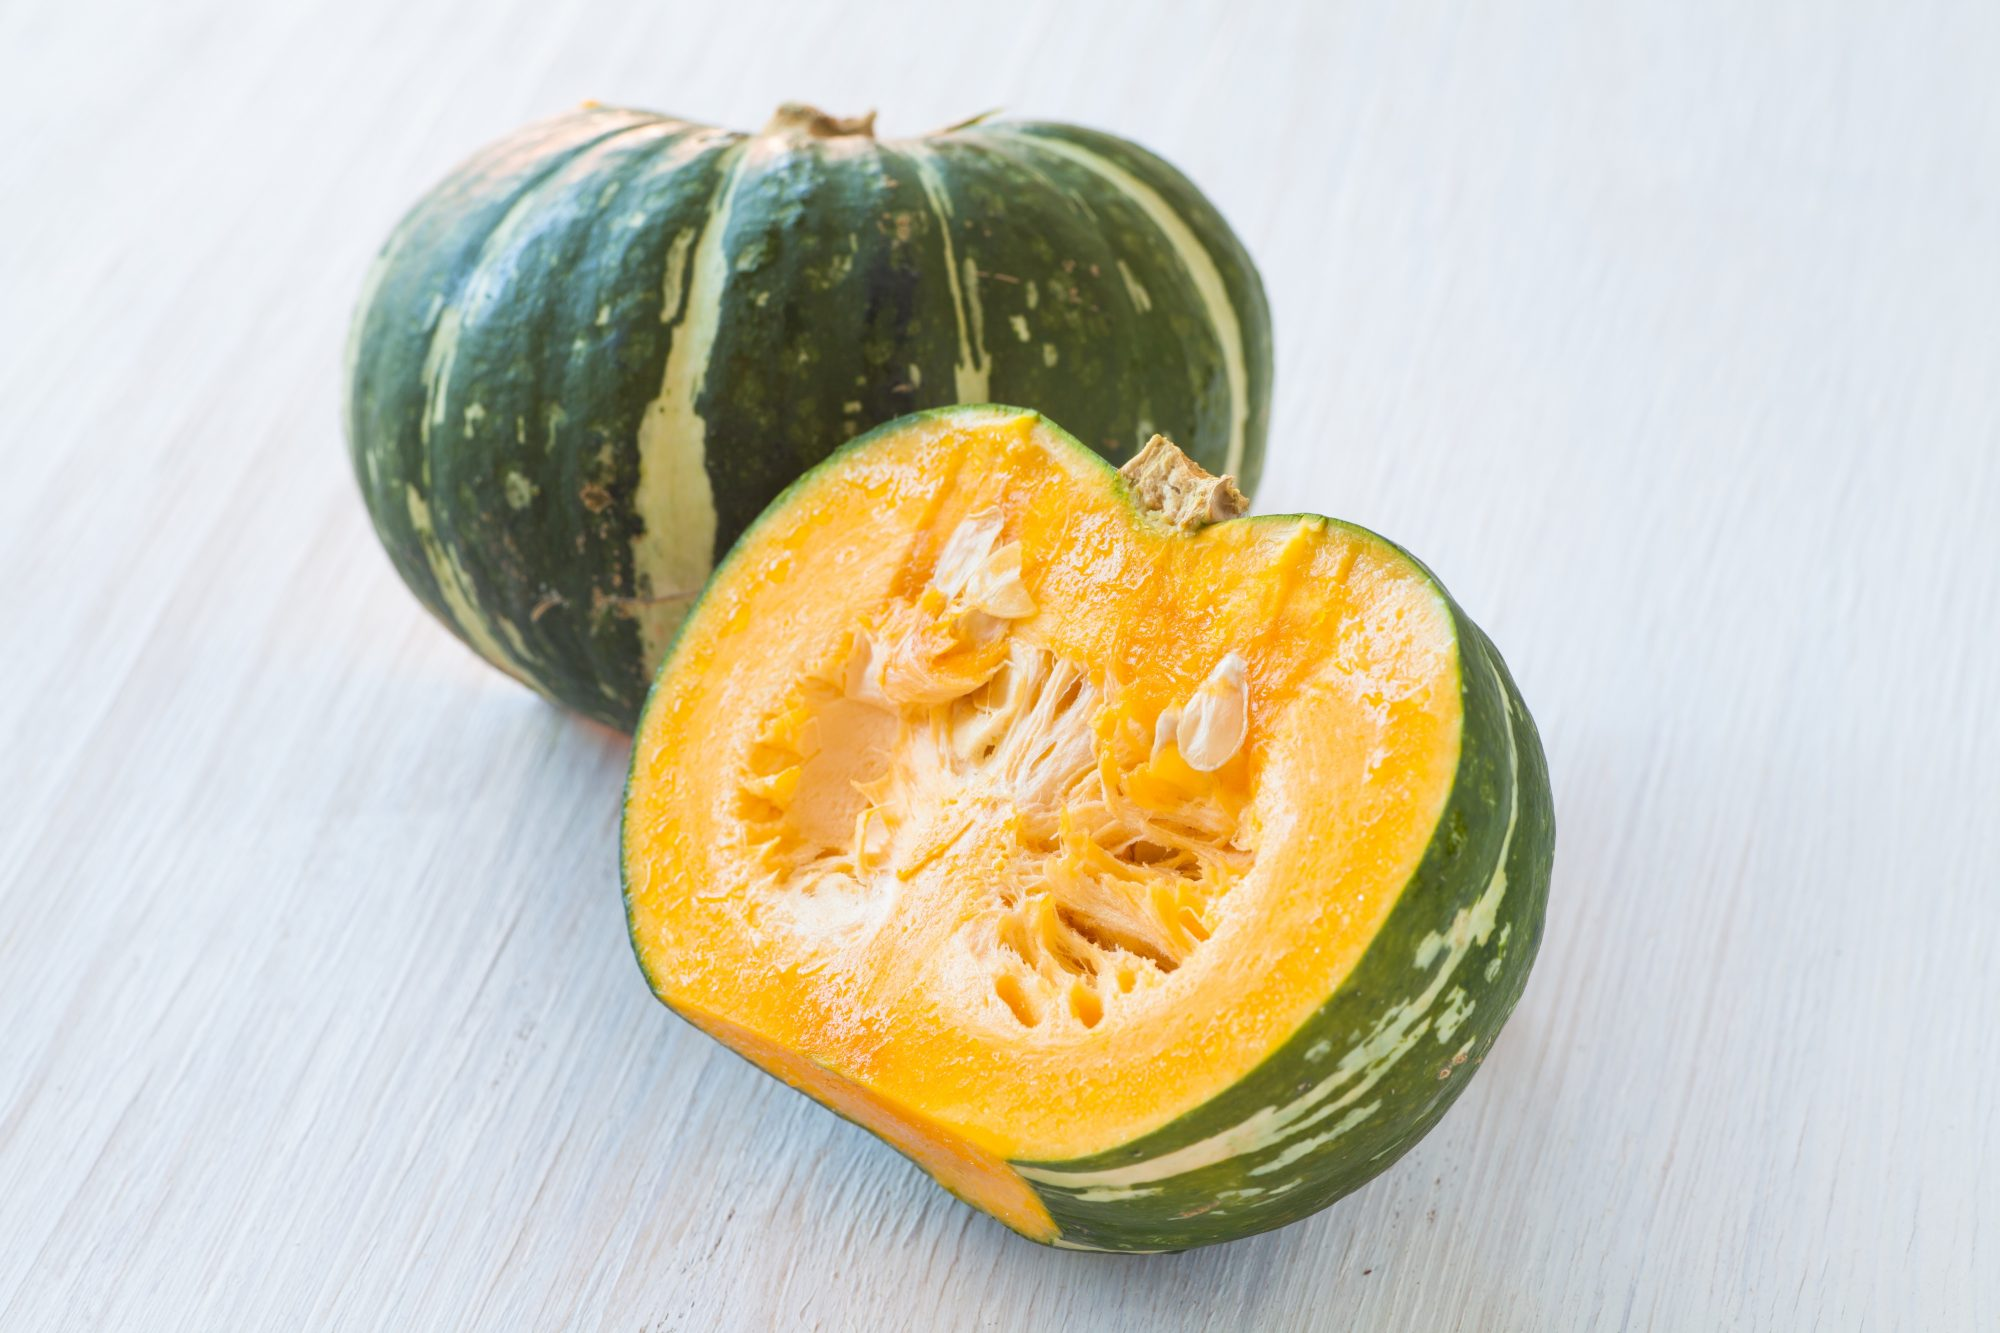 kabocha squash or japanese pumpkin